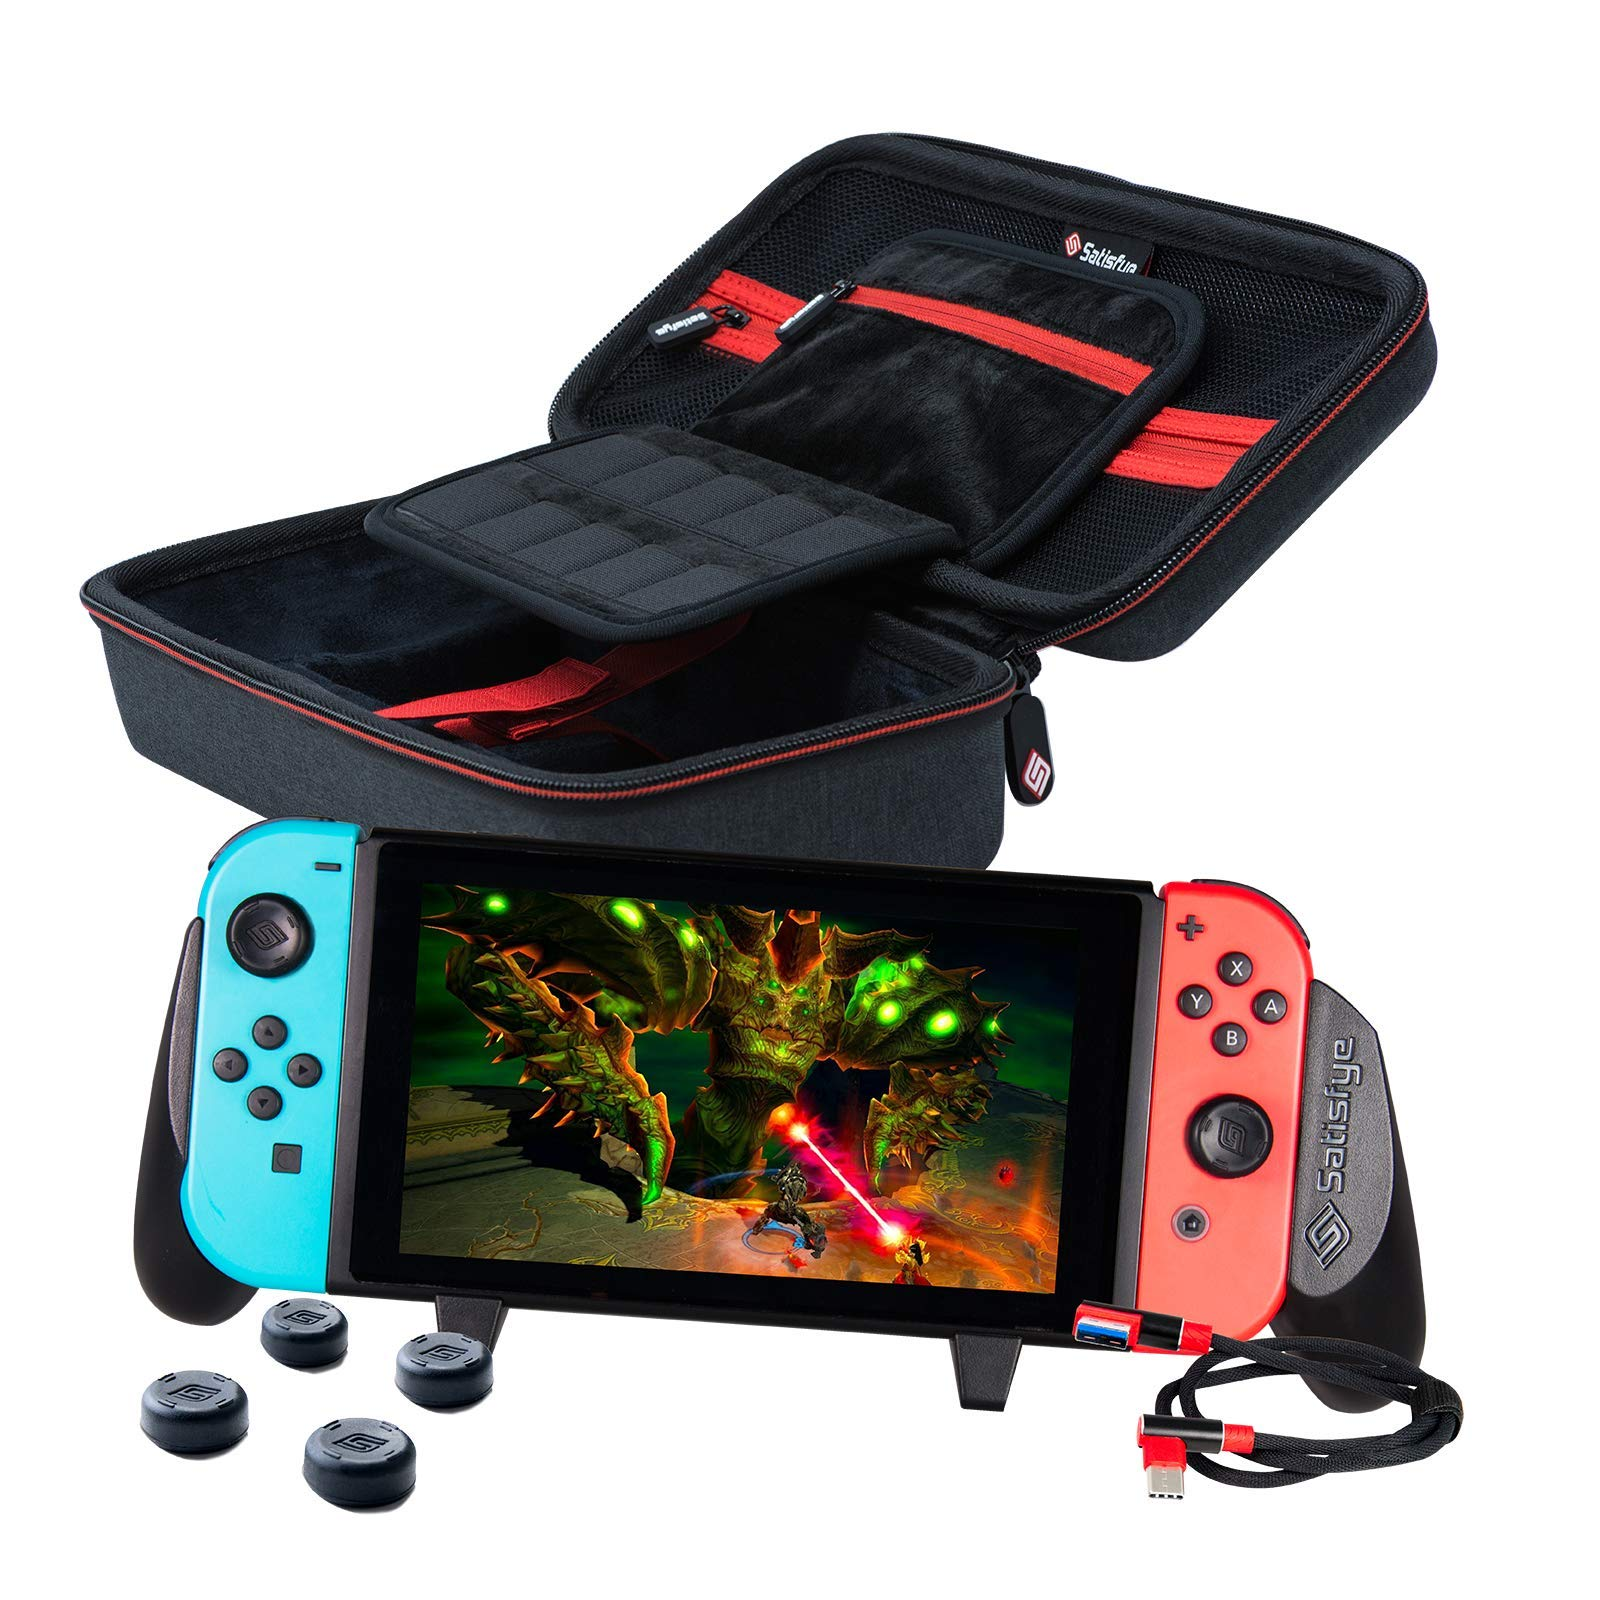 Satisfye - Accessories Bundle Compatible with the Nintendo Switch - Elite Bundle, The Switch Grip Case includes: Switch Grip, Switch Case and a Low Profile USB C charging cable. BONUS: 4 Thumbsticks by Satisfye